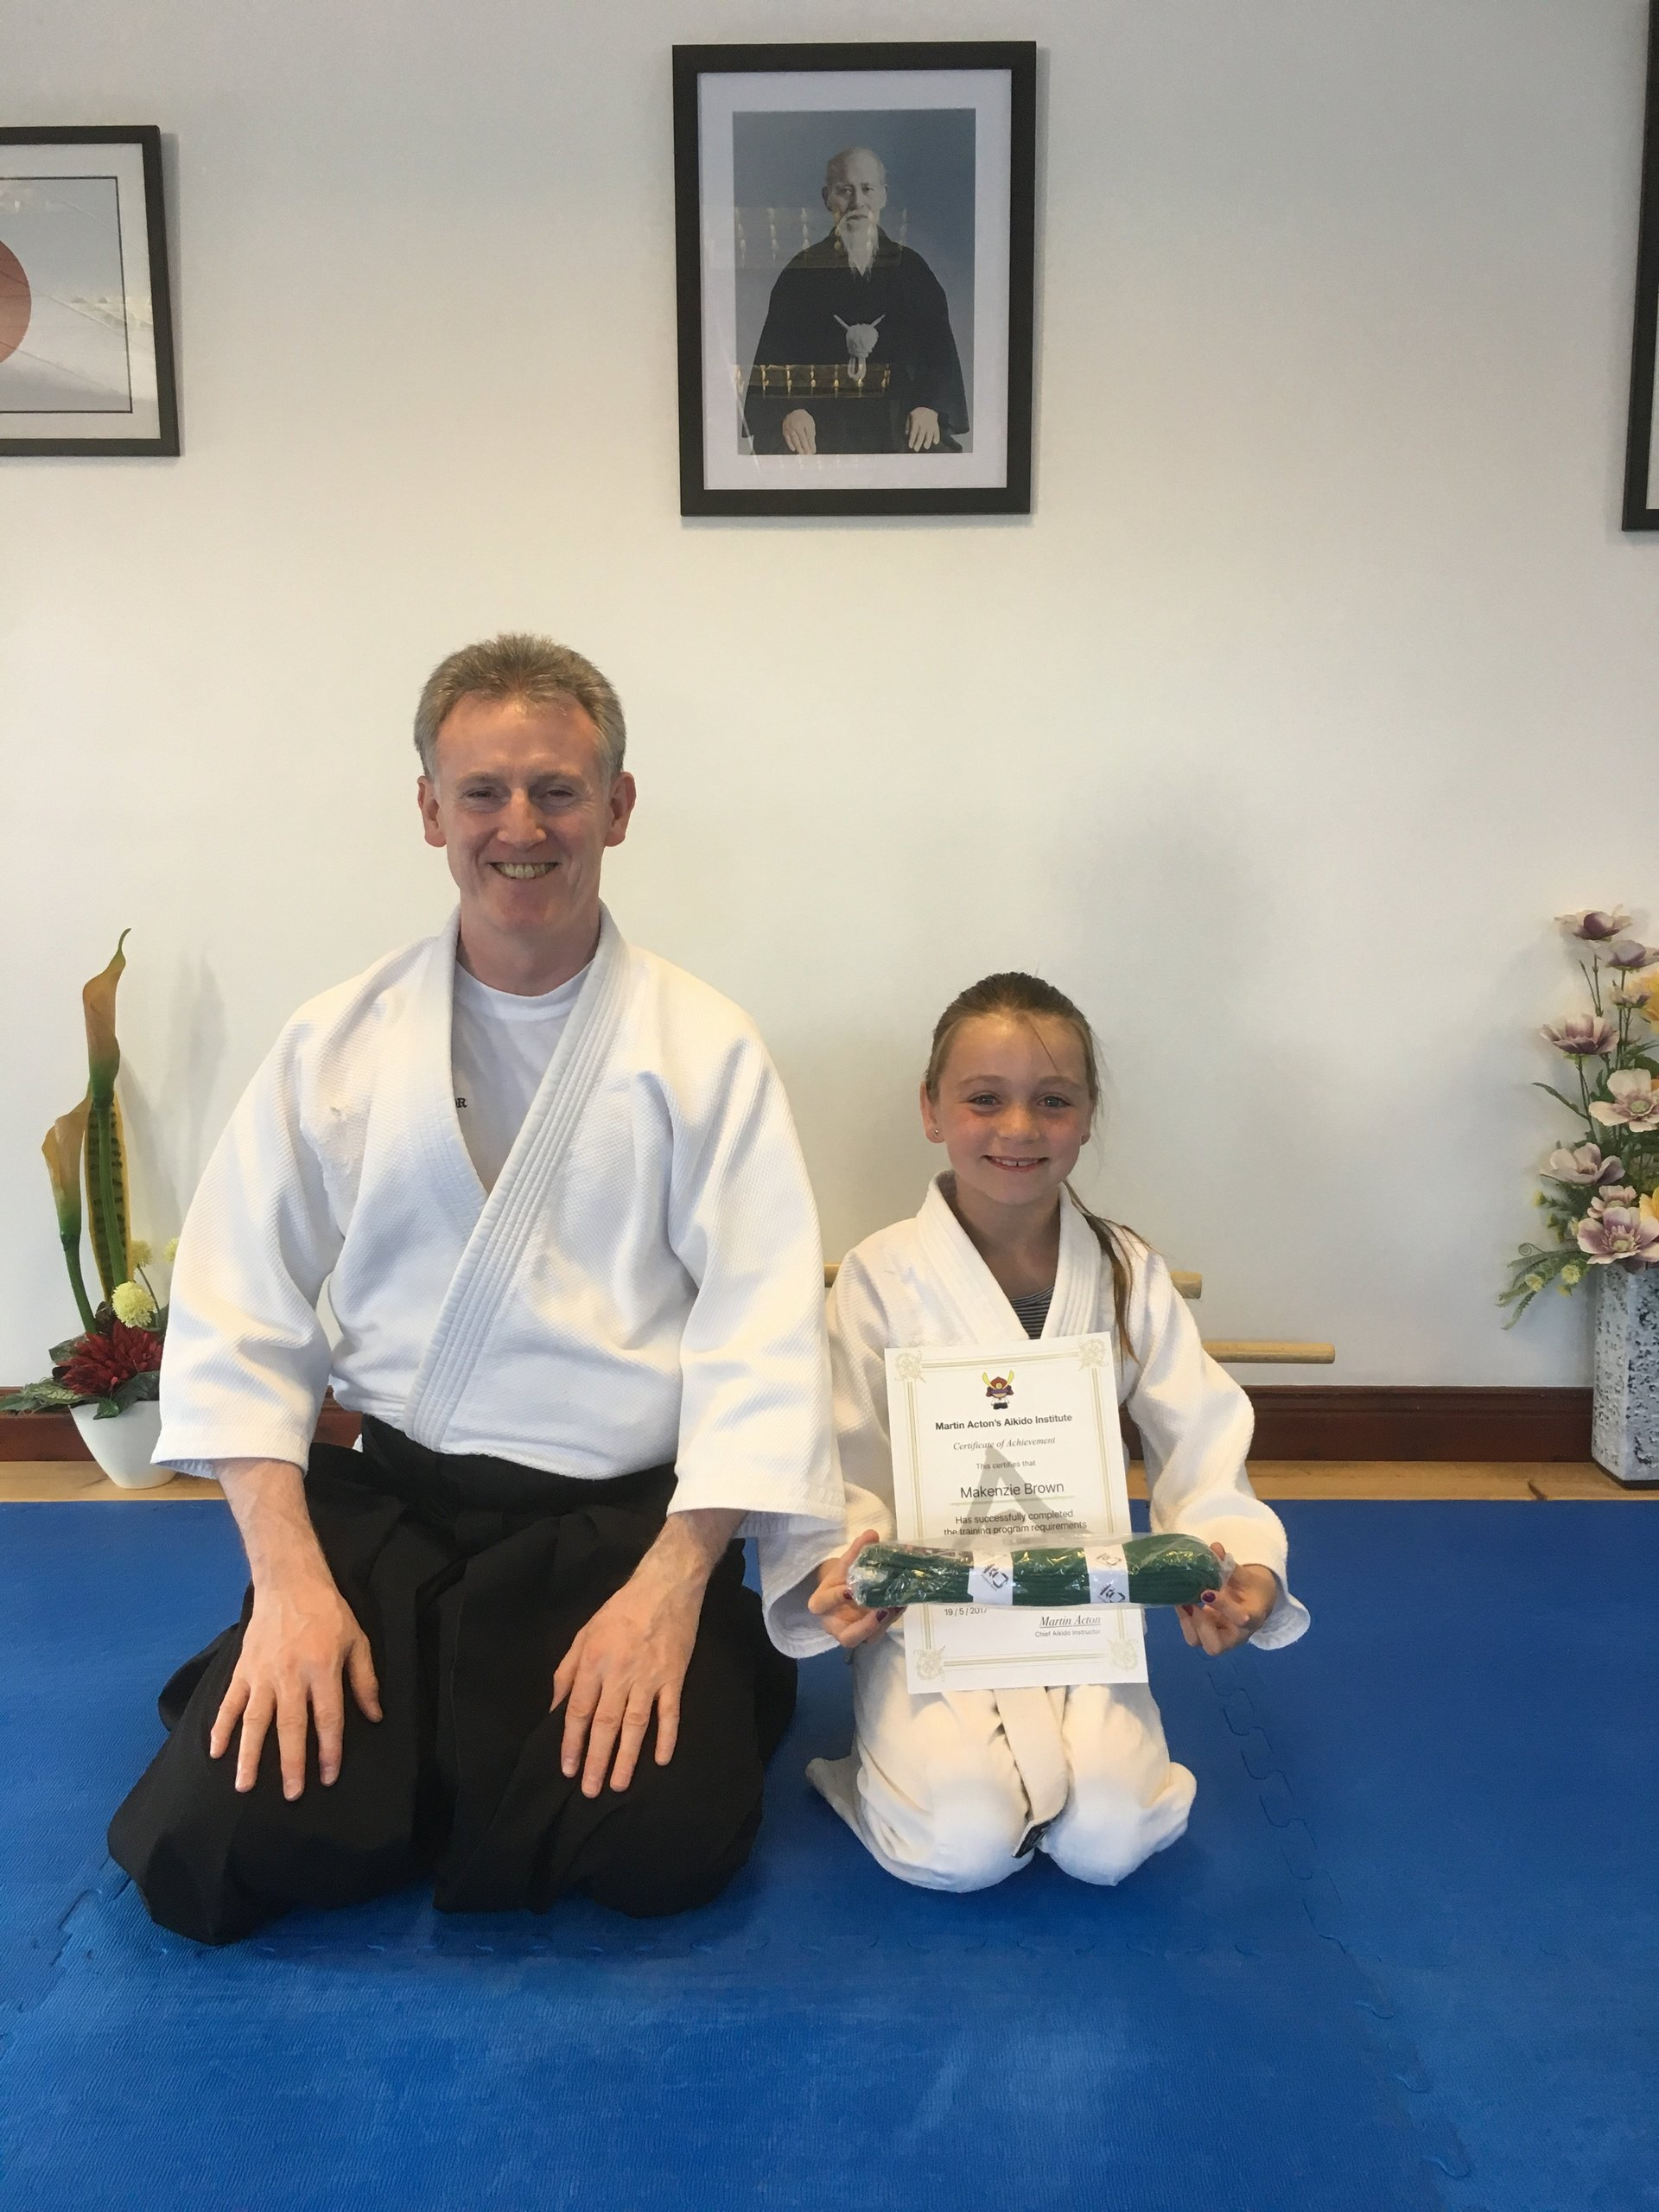 Mackenzie Brown getting her Aikido 10th kyu grading certification with Martin acton sensei on the 19/5/2017 at martin Acton's Aikido Institute.